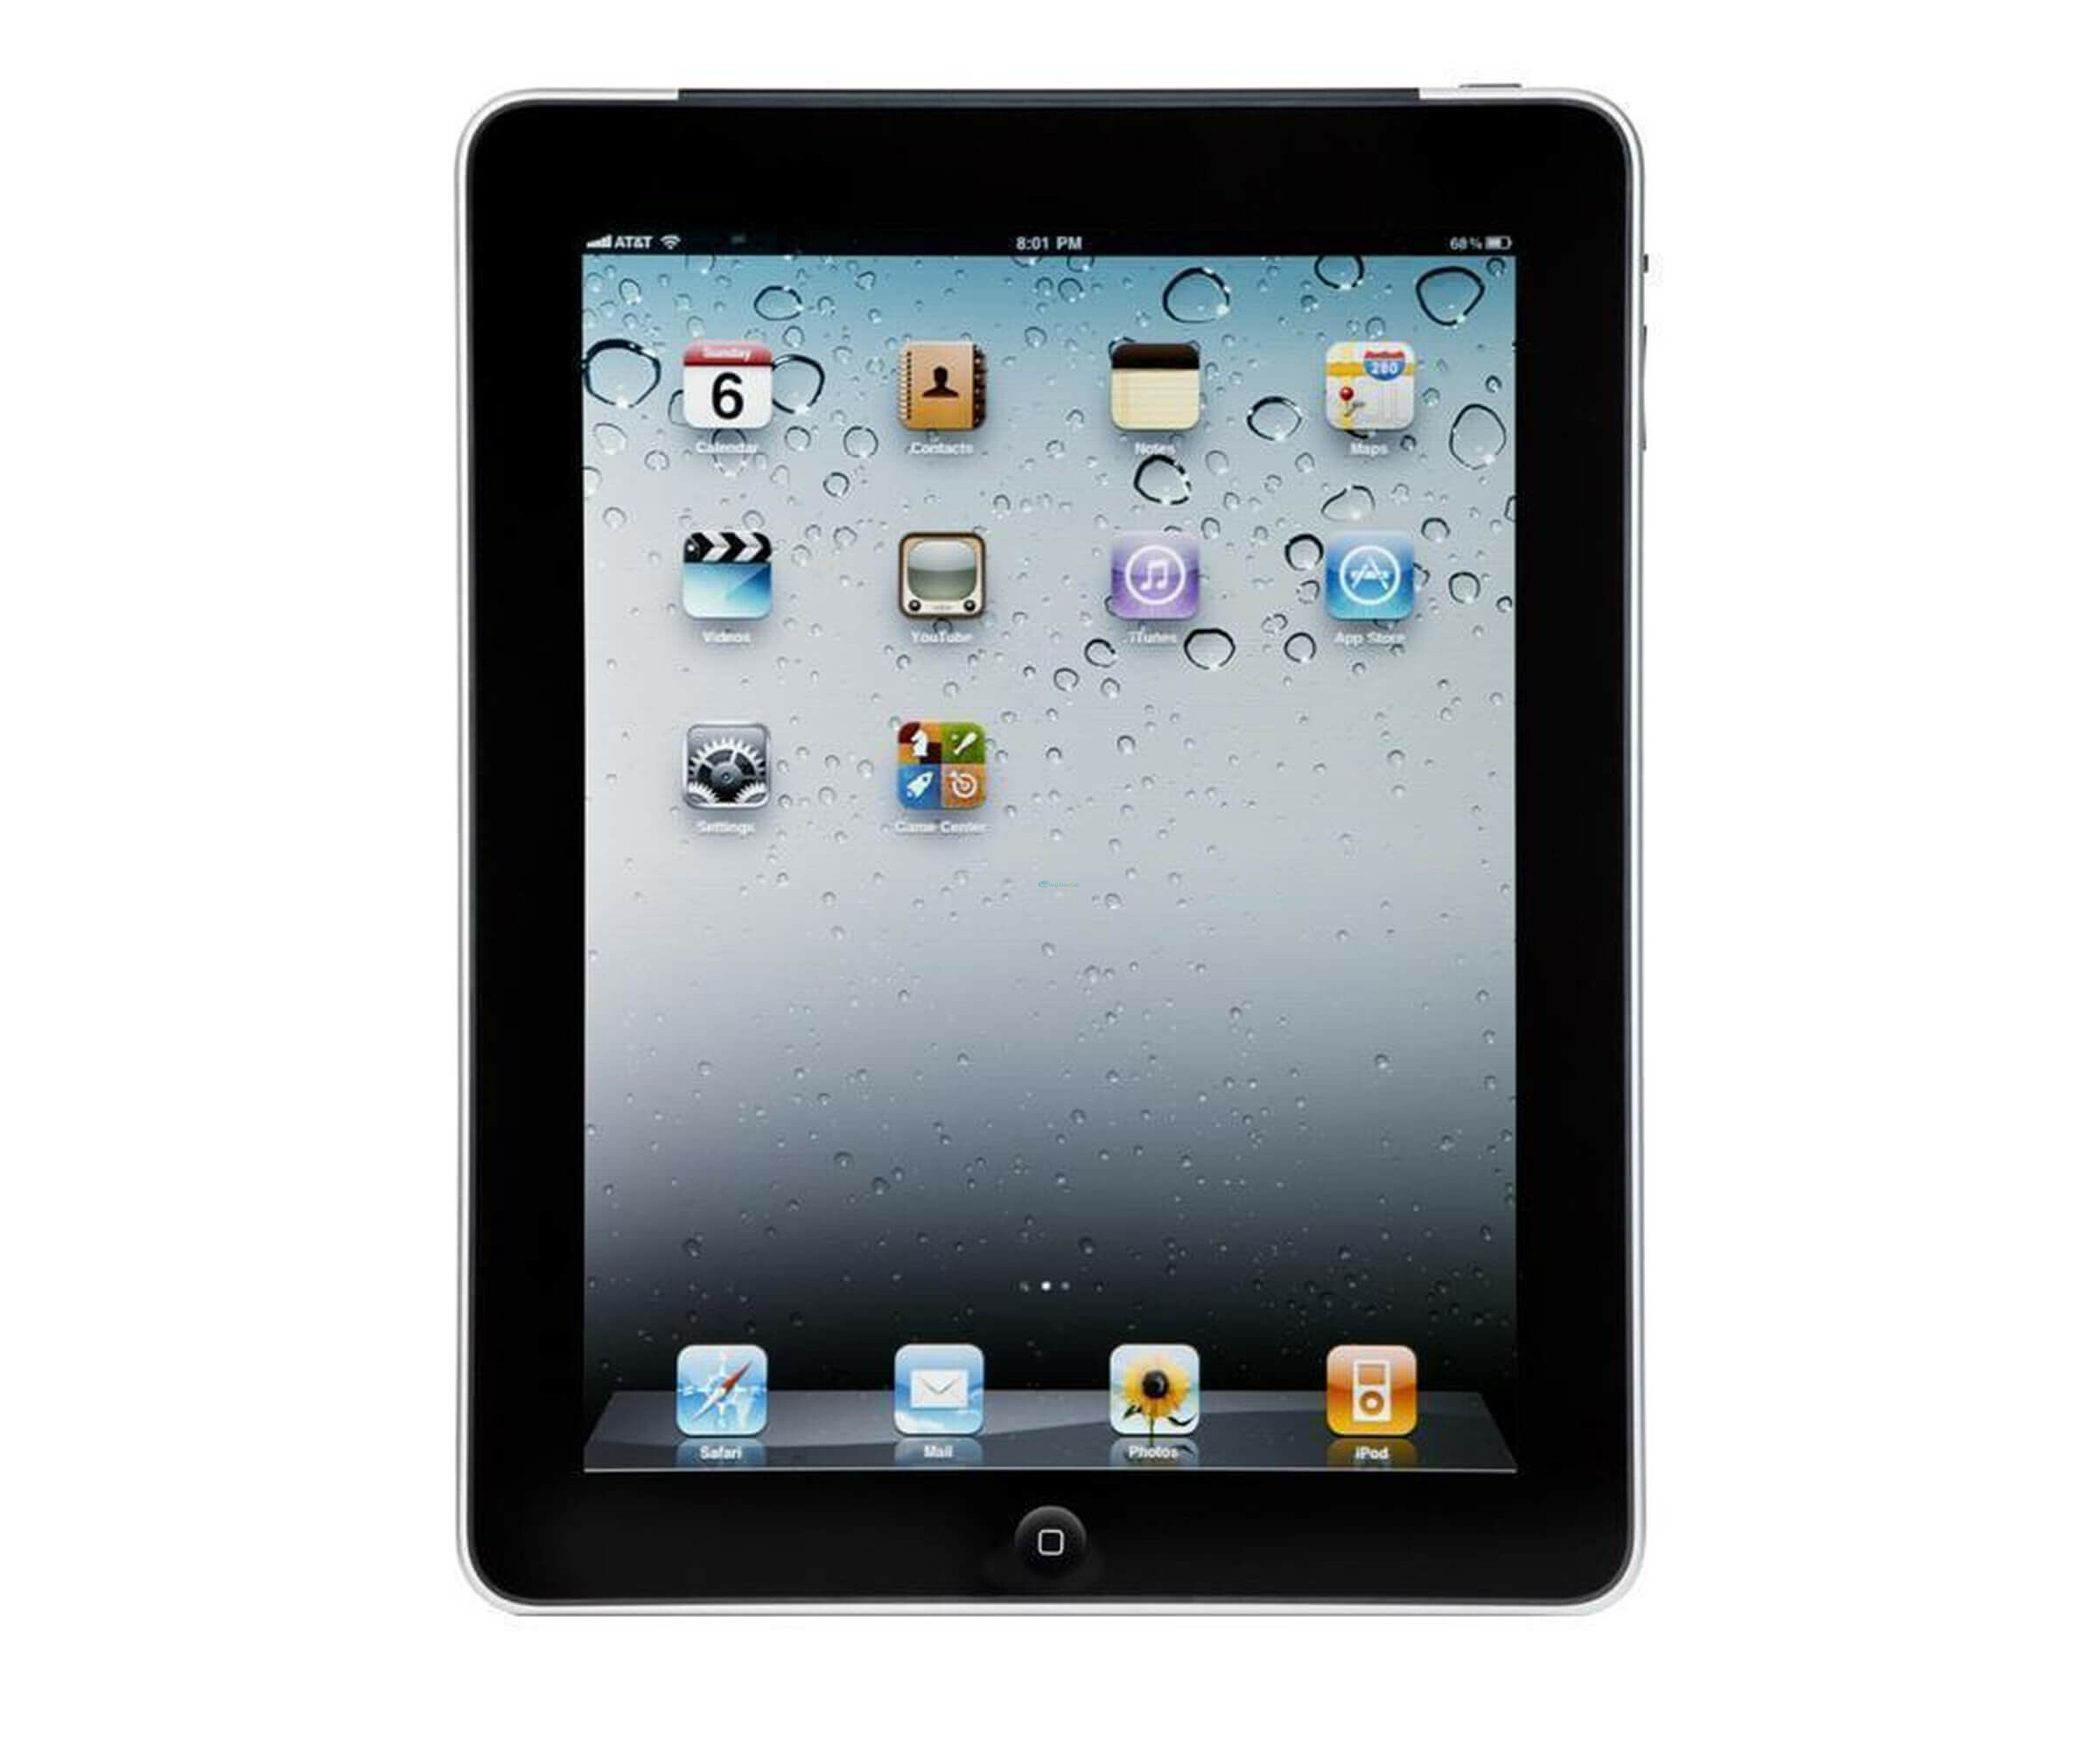 apple ipad 2 wi fi tablet 16 gb 24 6 cm 9 7 ips. Black Bedroom Furniture Sets. Home Design Ideas